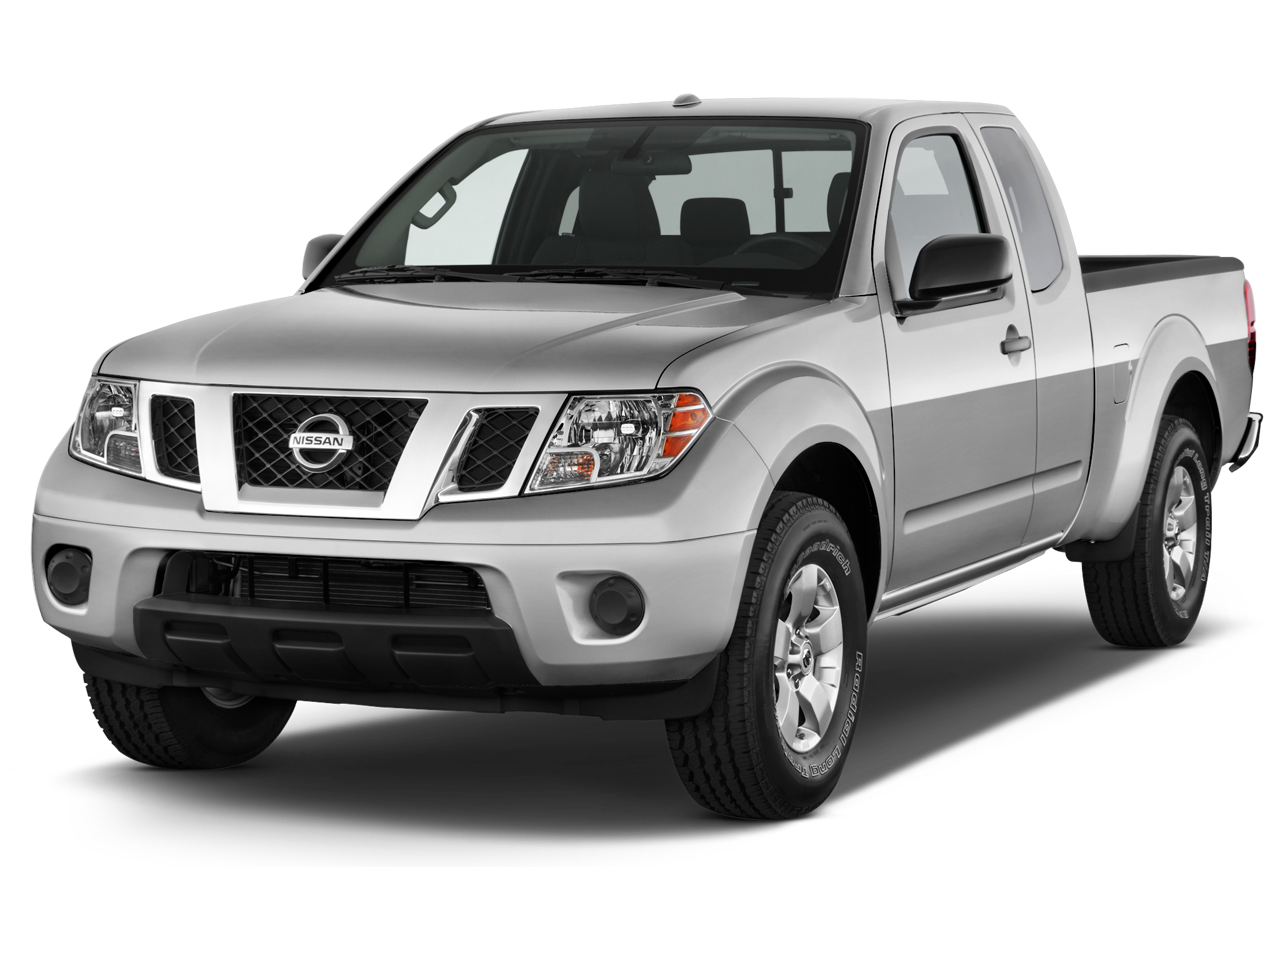 new 2016 nissan frontier sv near keyport nj pine belt nissan. Black Bedroom Furniture Sets. Home Design Ideas